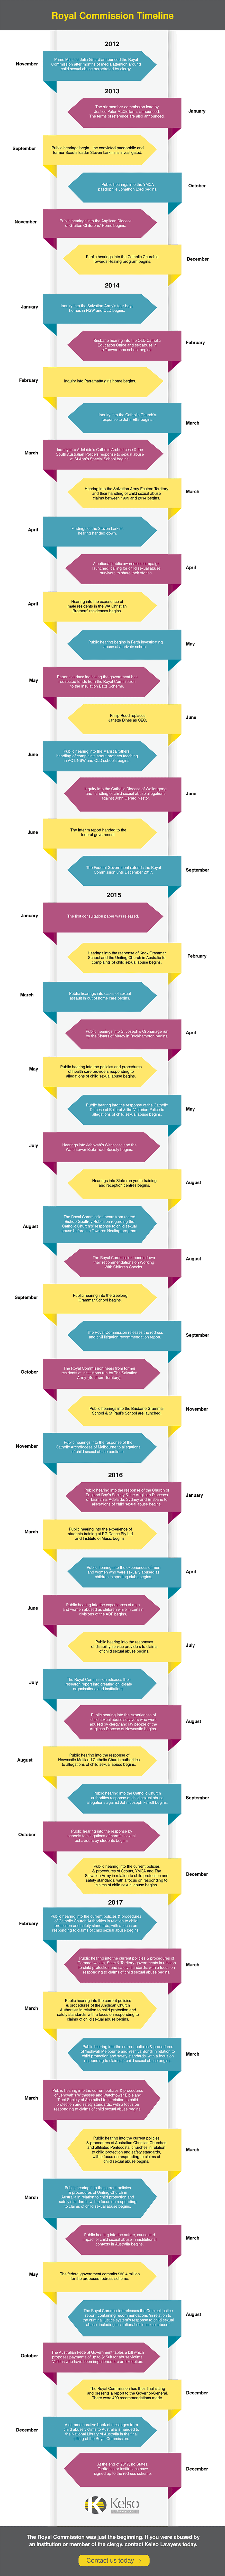 Royal-Commission-into-Child-Sexual-Abuse-Timeline